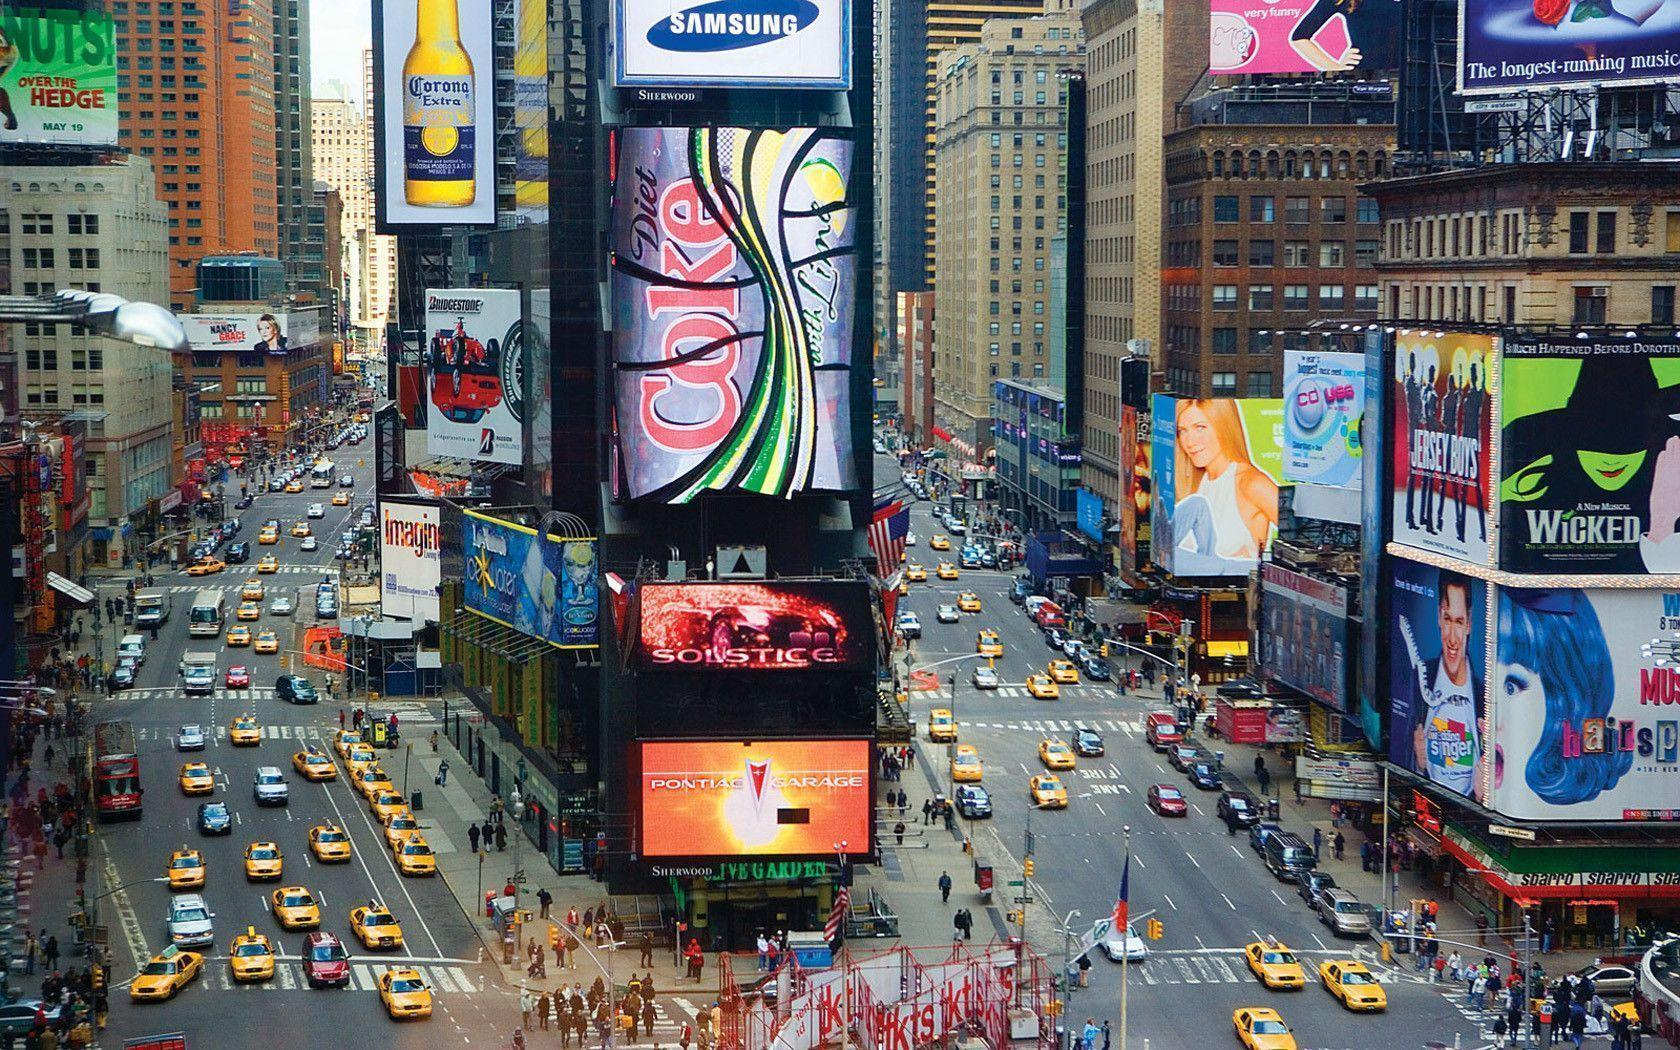 New York Times Square See Sight wallpaper